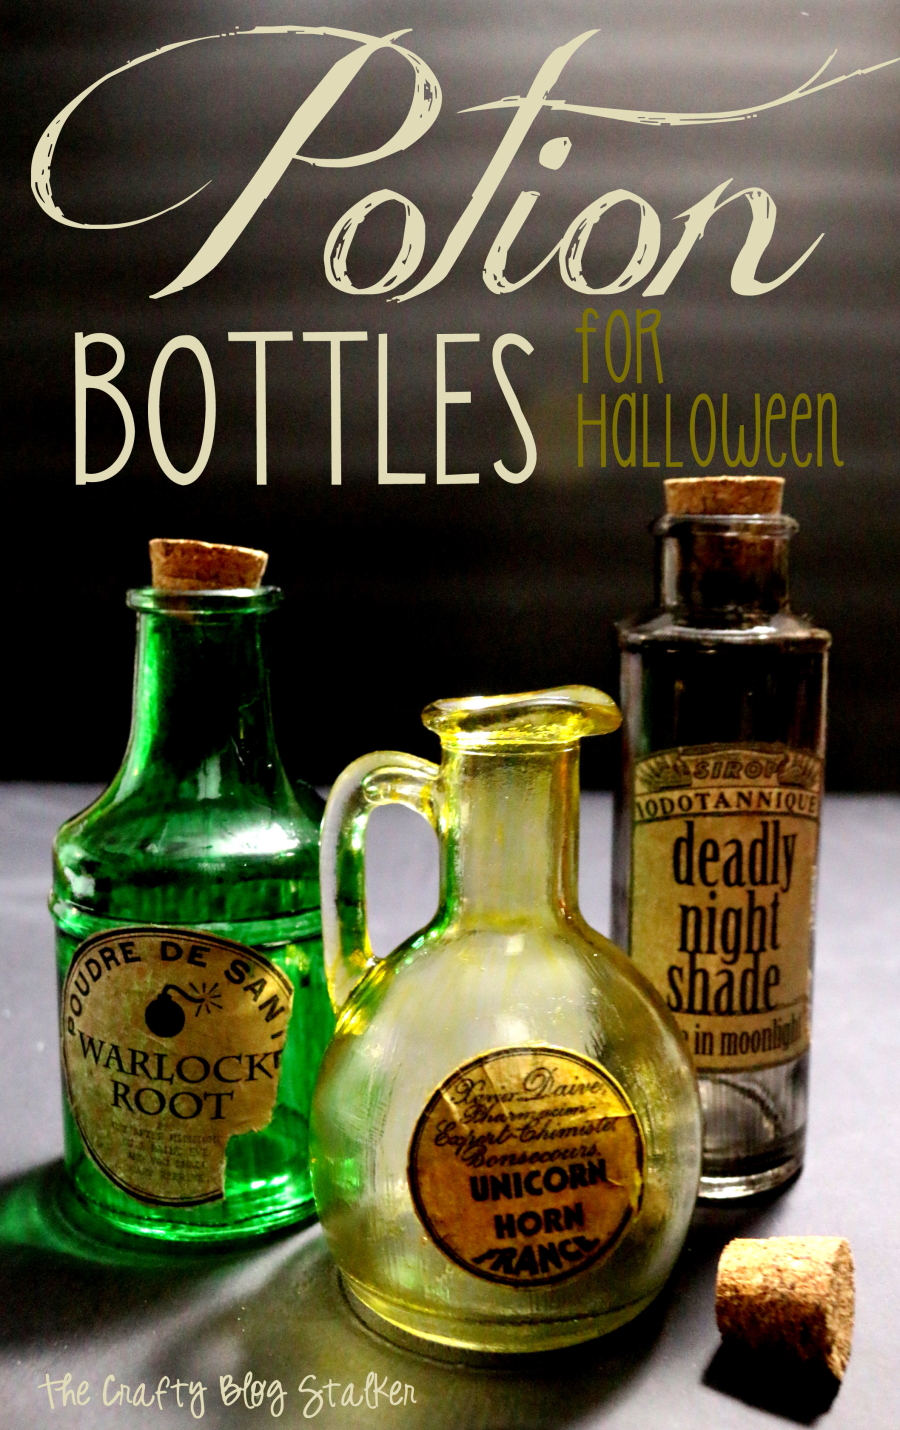 Potion bottles for halloween the crafty blog stalker - How to make homemade halloween decorations ...